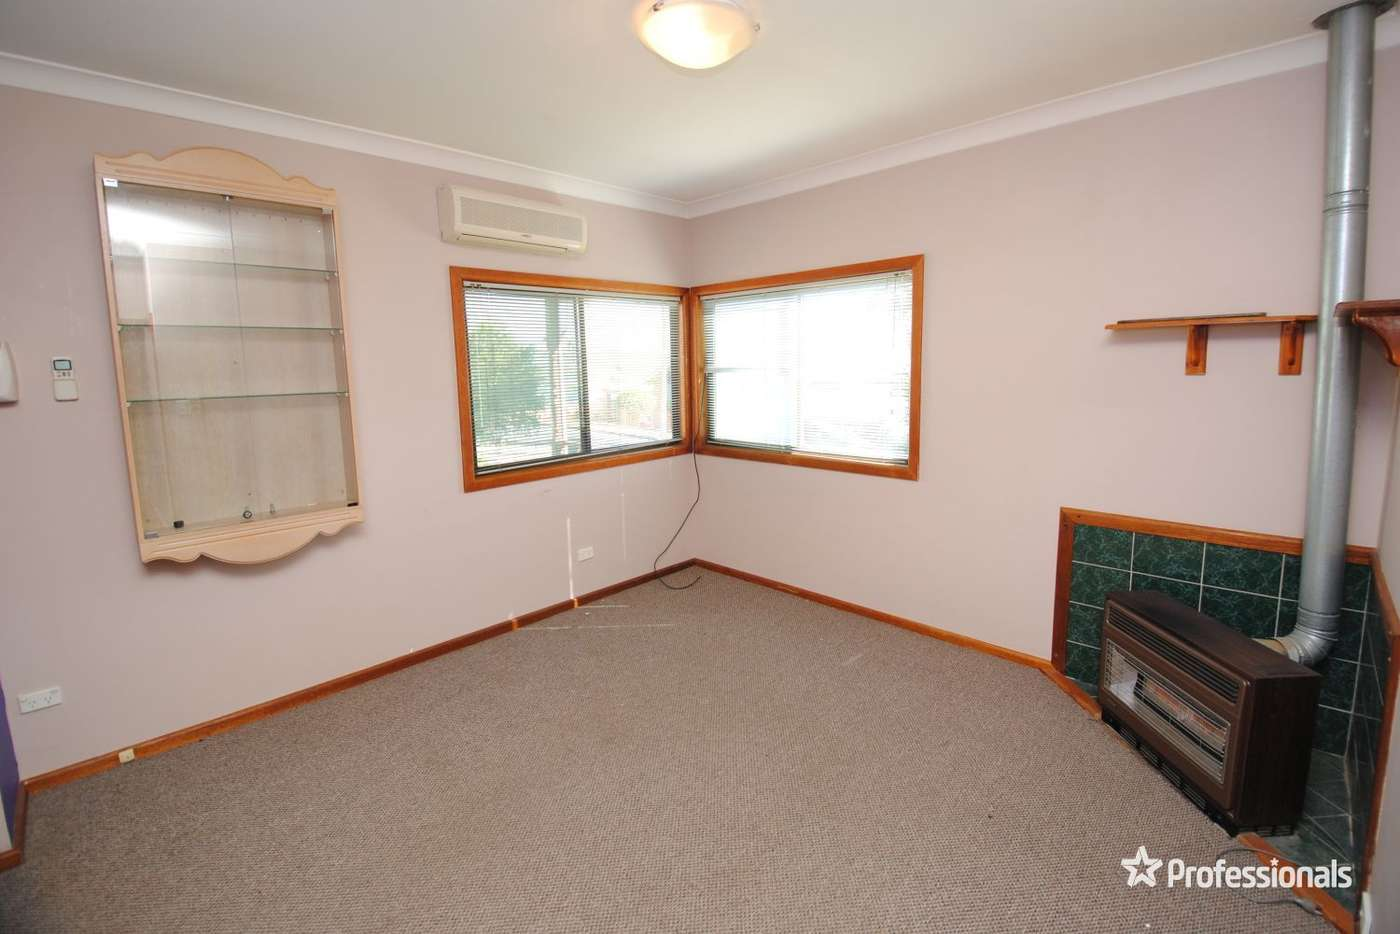 Seventh view of Homely house listing, 19 Third Street, Lithgow NSW 2790